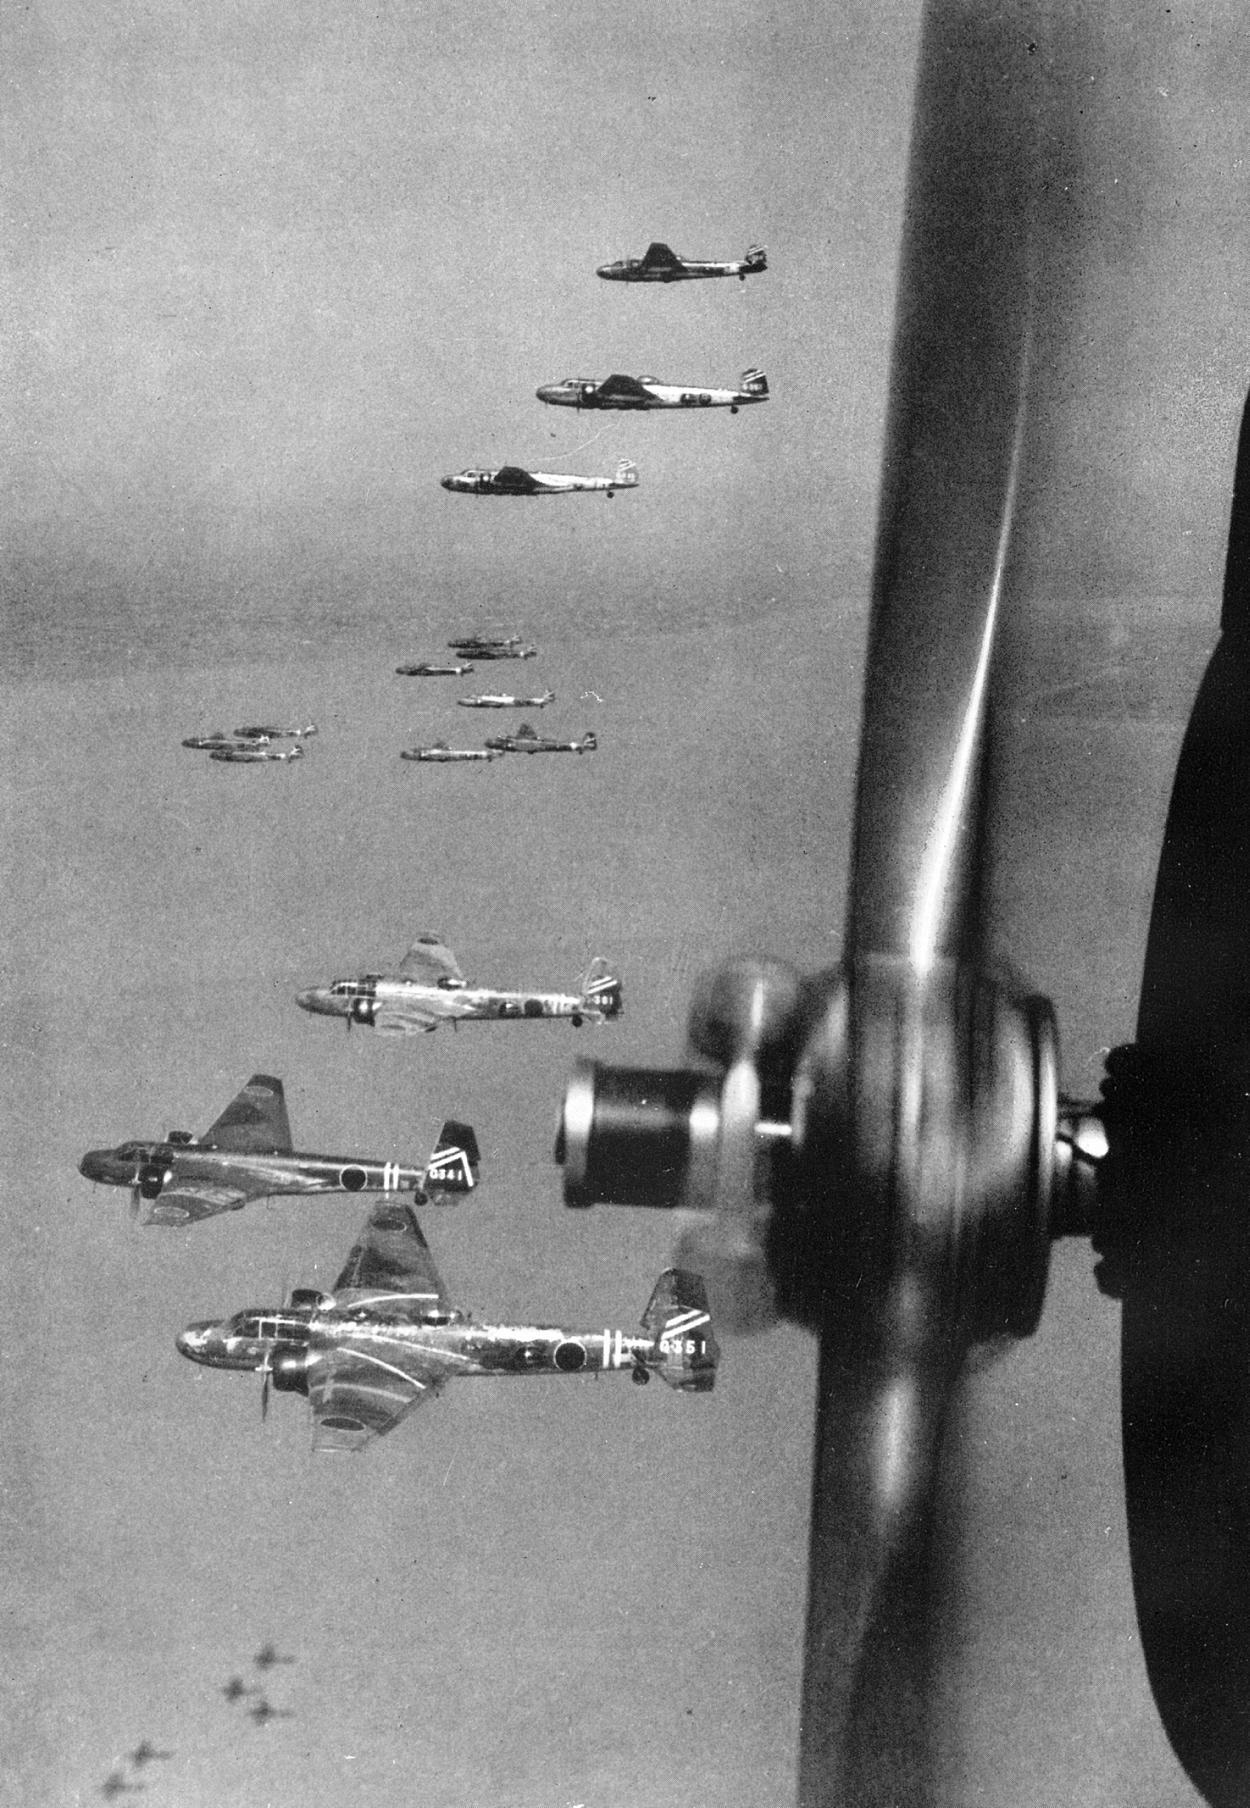 Japanese bombers in flying formation